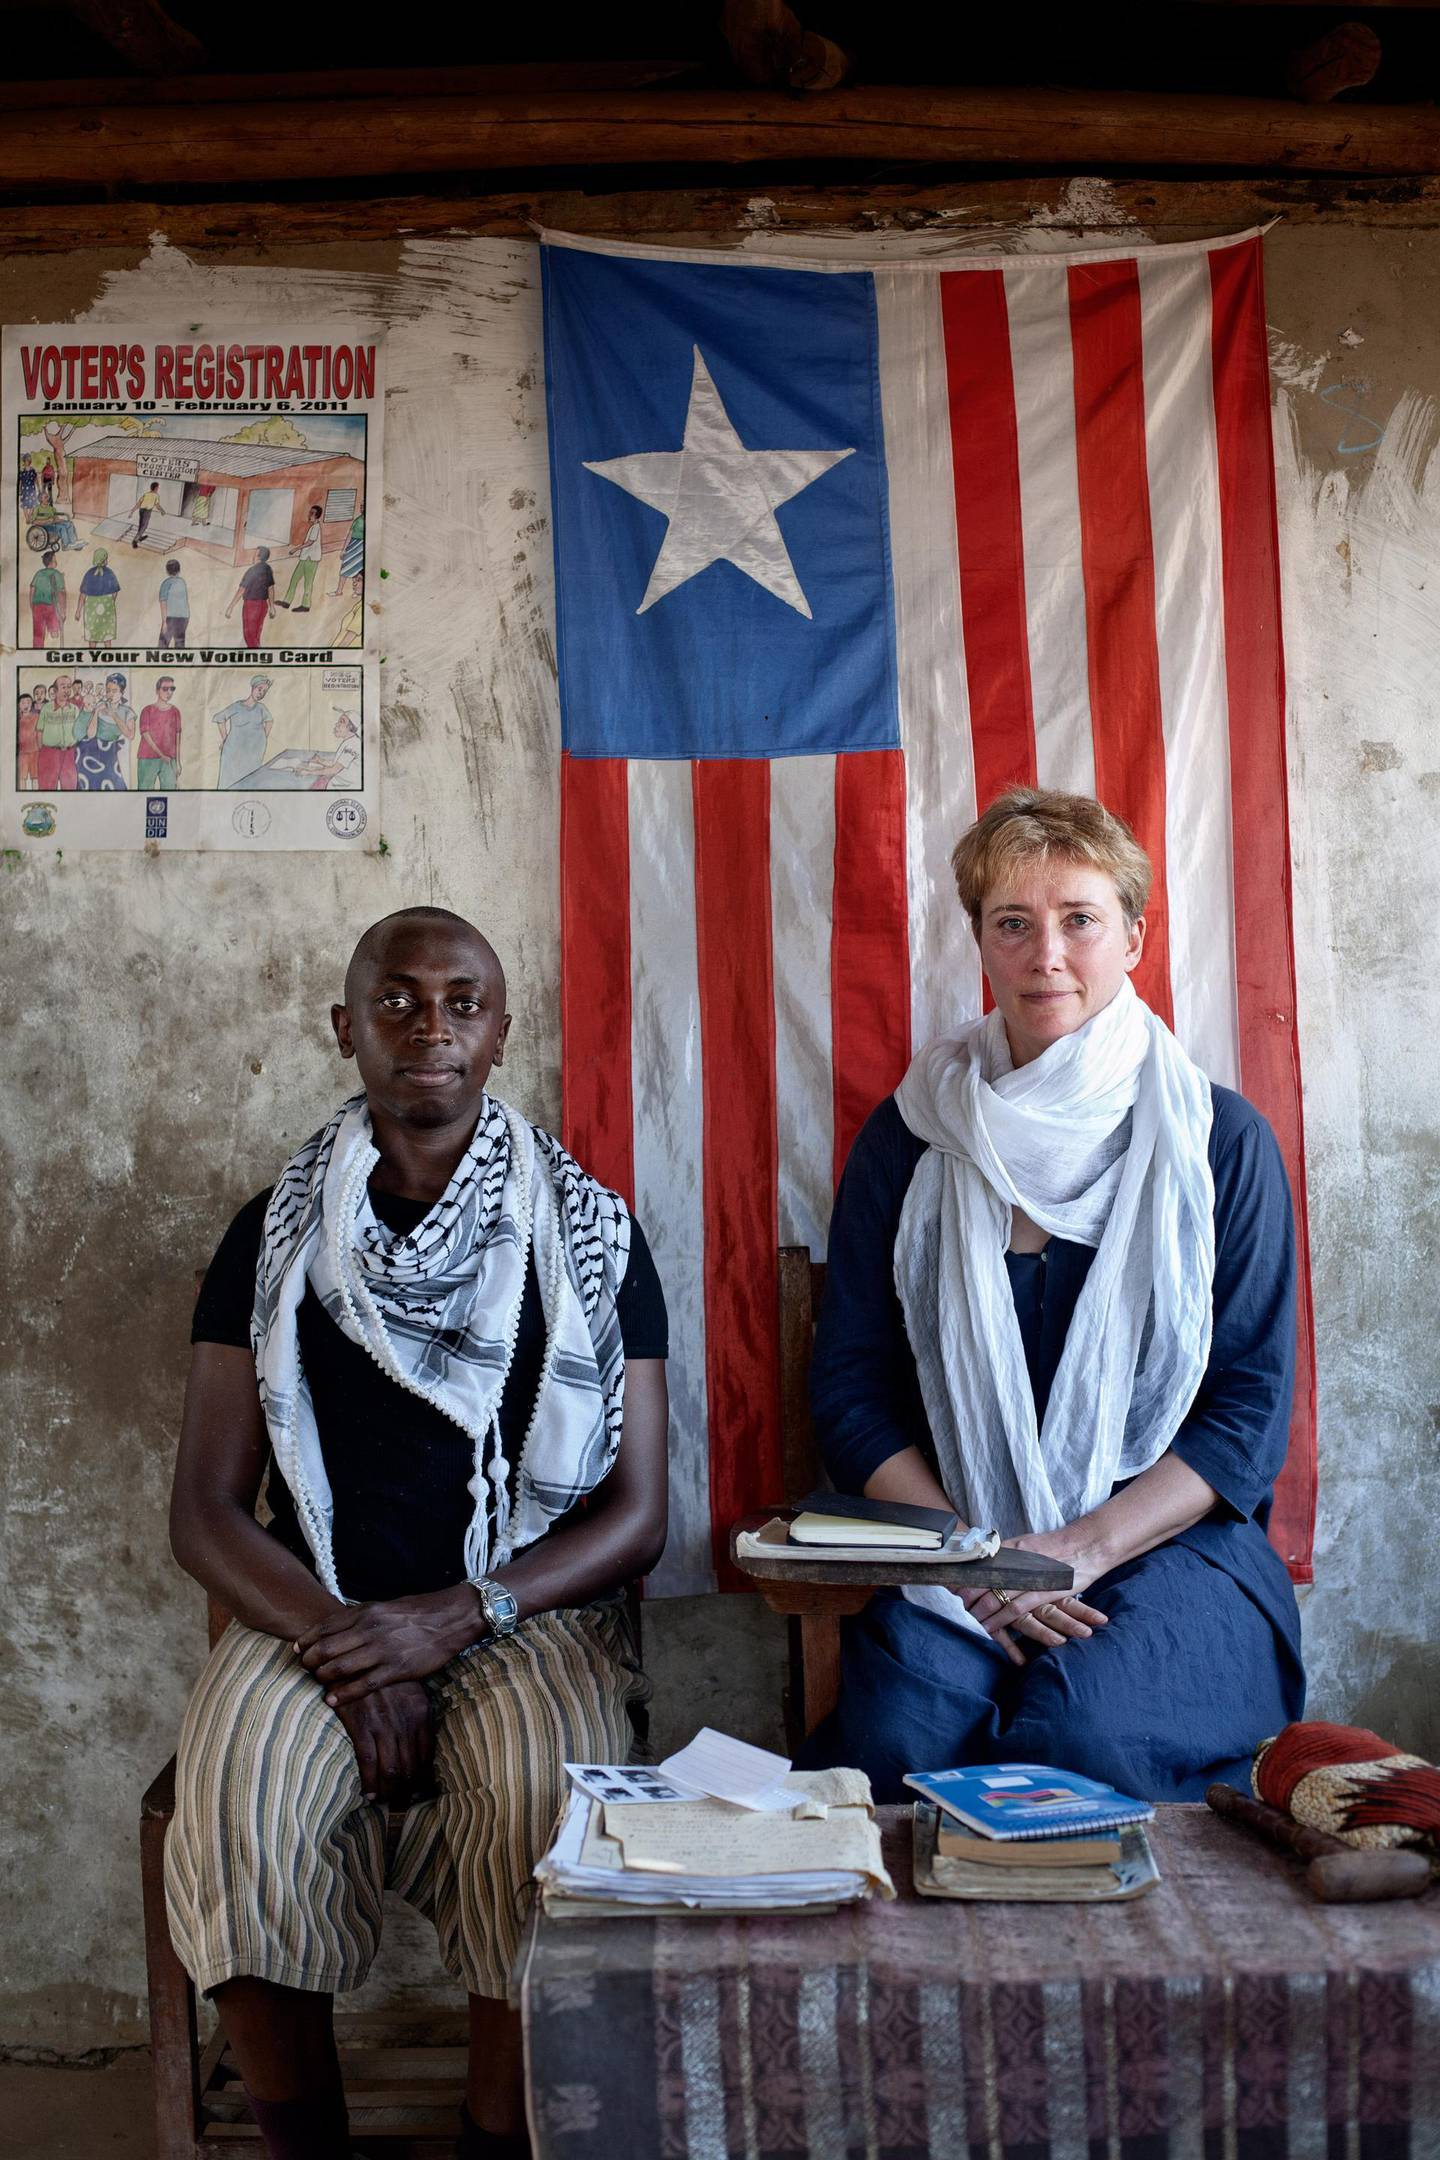 Emma Thompson and her adopted son Tindyebwa Agaba, who is known as Tindy, sit infront of the Liberian flag that hangs in Maime Smith's front porch in Zannah village, Monserrado county, Liberia.